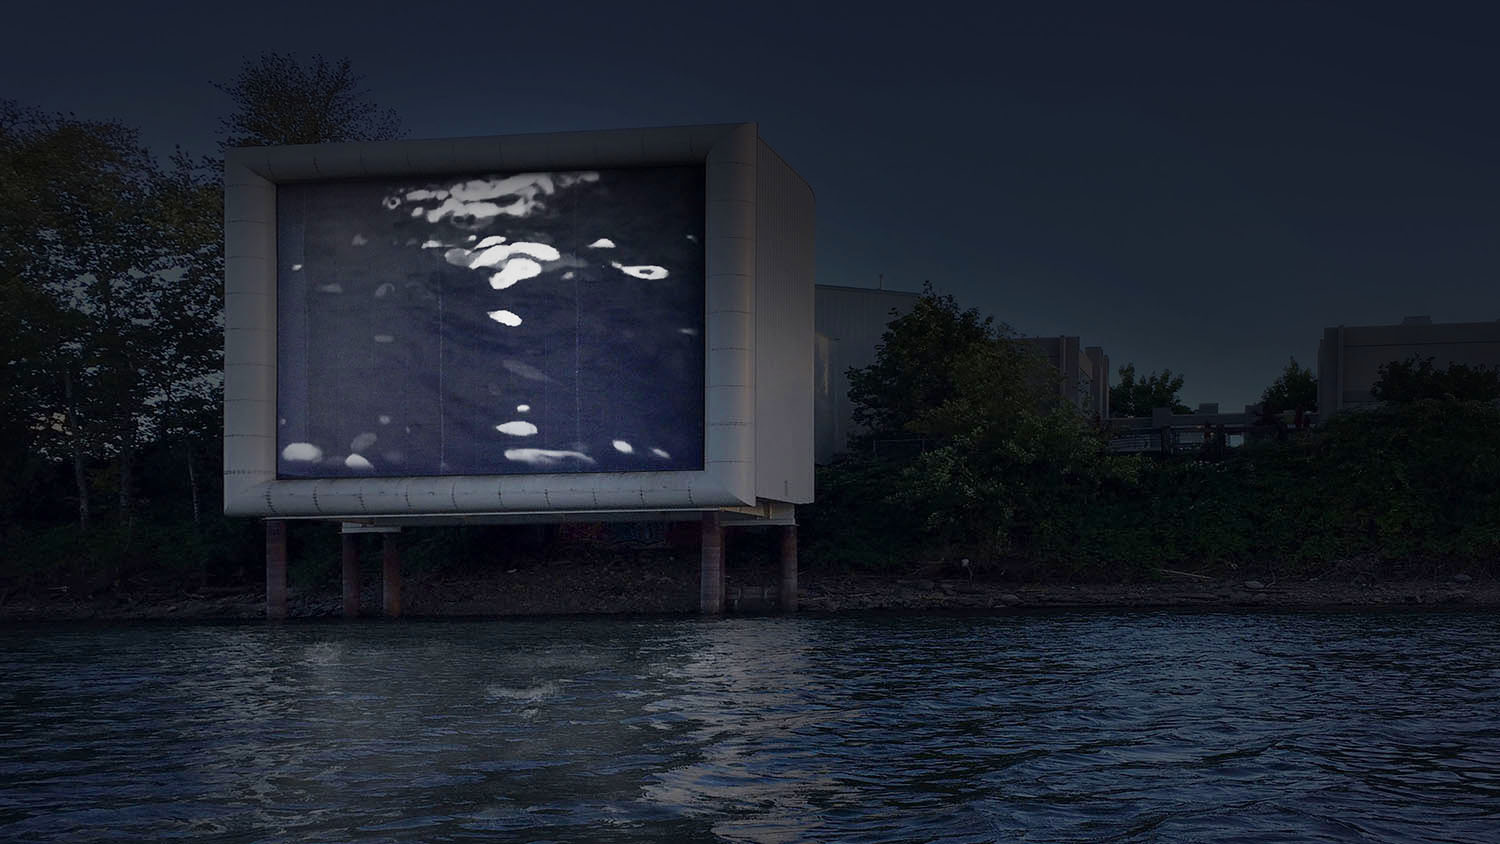 Big TV on River.jpg